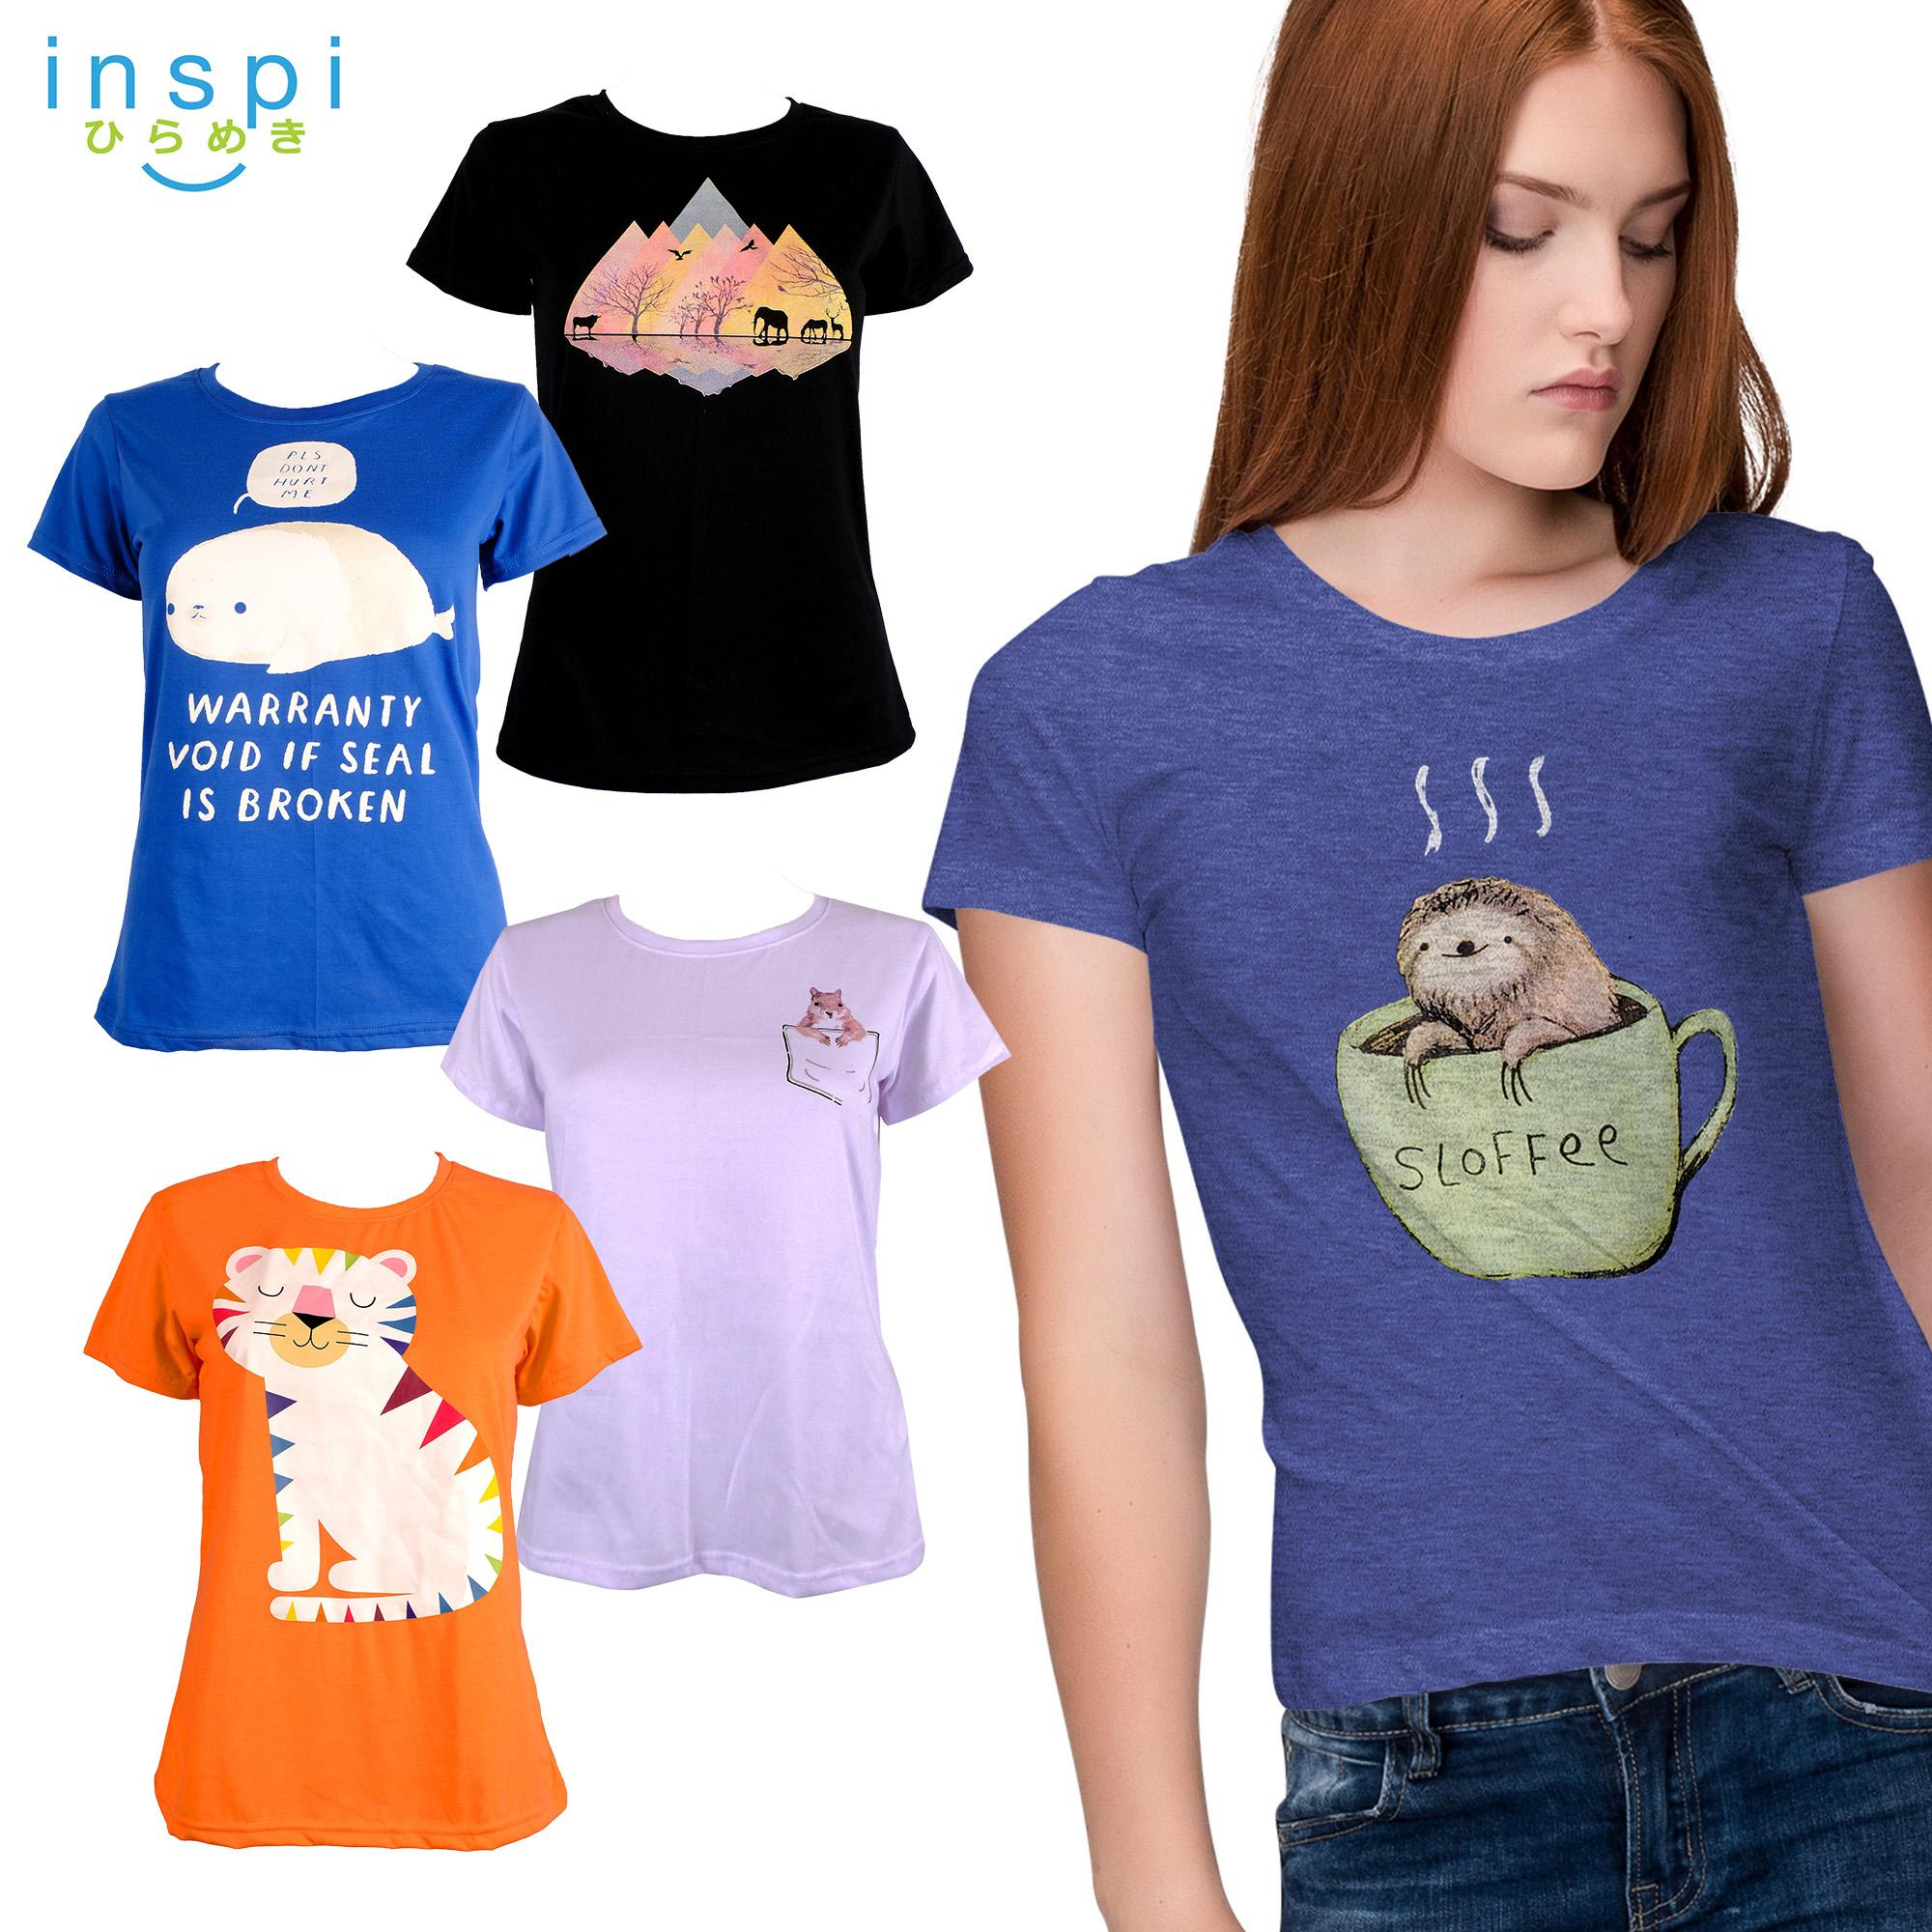 34c0692967f INSPI Tees Ladies Pet Collection tshirt printed graphic tee Ladies t shirt  shirts women tshirts for women womens tshirt sale